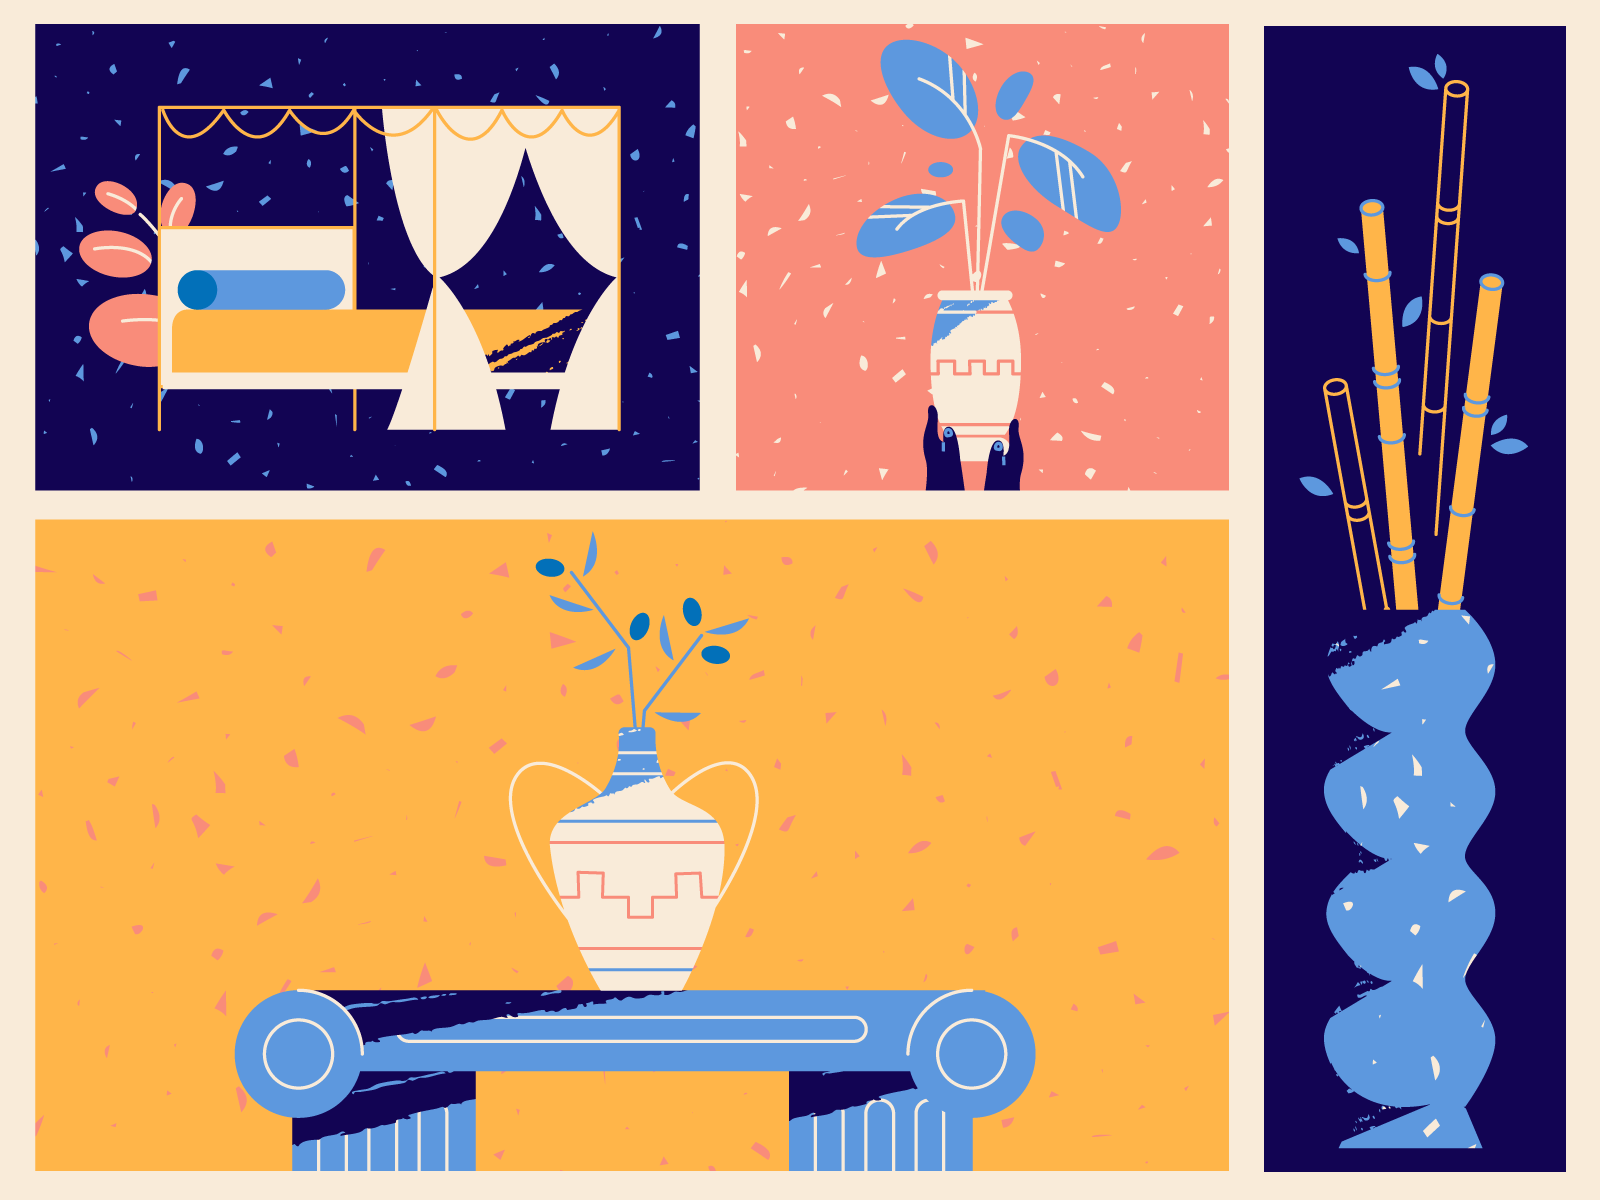 Breezy furniture by Dinos&Teacups on Dribbble